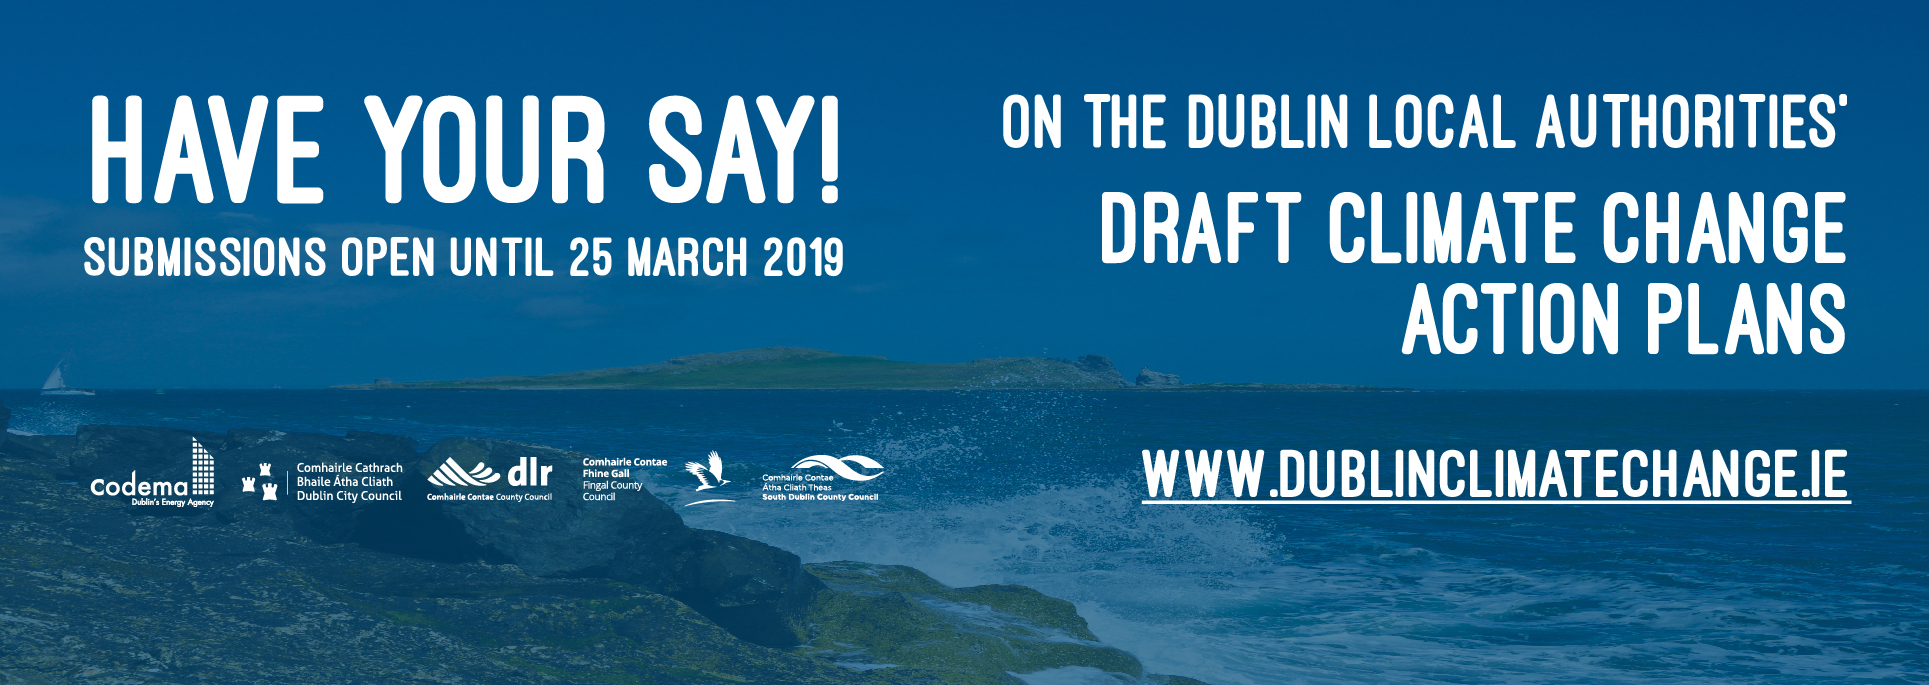 Have your say on the Draft Climate Change Action Plans